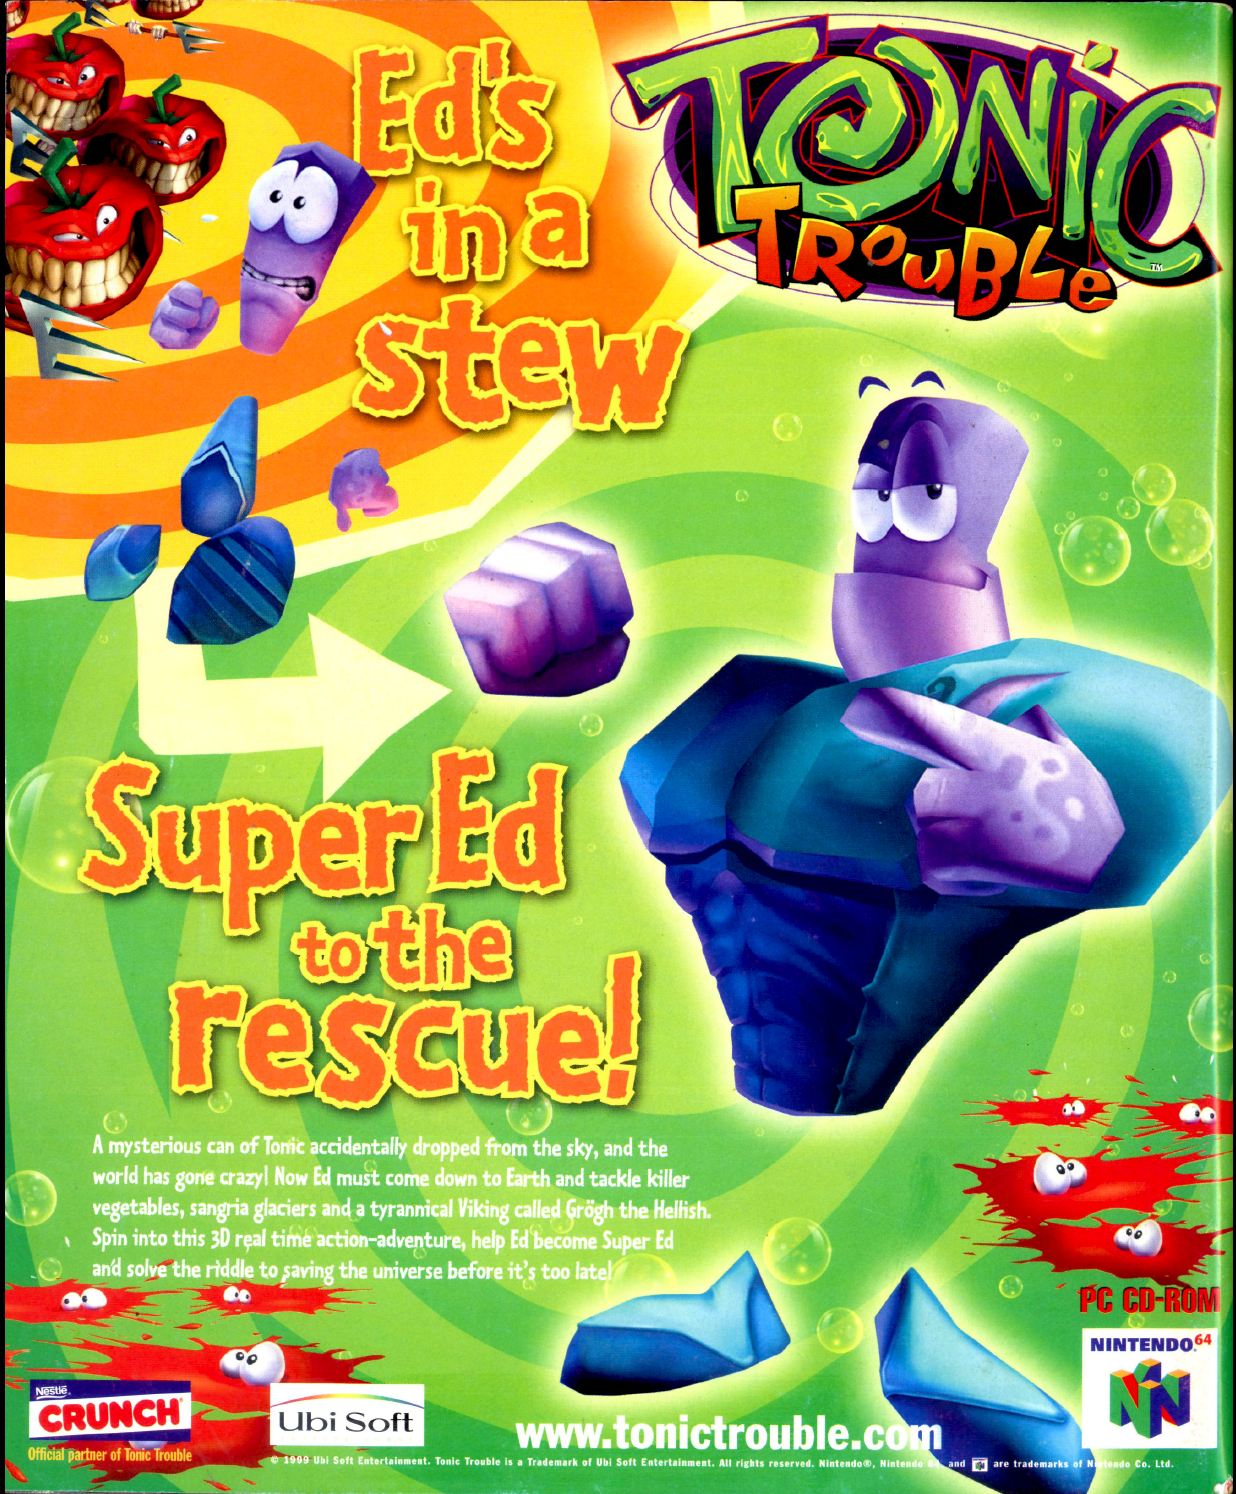 """Image For Post   **Description**   In the tradition of Rayman (a platform jumper) comes another whacky adventure from Ubisoft!  Ed, the friendly alien space janitor, accidentally dropped a can of """"tonic"""" on Earth, causing a great ecological disaster. Everything started mutating! Ed is ordered to clean up the place and retrieve the tonic, but someone got hold of it first... And he declared himself Master of Earth! Can Ed survive attack of the killer vegetables, find the six items he needs to fix Earth, and retrieve the Tonic can from Grogh the Hellish, and finally get out from Tonic Trouble?  **Development**   Tonic Trouble was conceived and initially designed by Michel Ancel, who had created Rayman in 1995. Ancel was largely inspired by the storyline of Day of the Tentacle and the world-travelling mechanic from The Legend of Zelda: A Link to the Past. Starting pre-production in June 1996, Tonic Trouble was the first project to be developed by the previously established Ubi Soft Montreal, which devoted a team of sixty programmers, thirty animators, twelve level designers, twelve 3D artists, and four audio department employees.  The game engine, known as """"Architecture Commune Programmation"""", was built by fifty in-house staff over a course of eighteen months, with a total cost of US$4 million. Using the engine, the developers wanted to take full advantage of Intel's newest Pentium II generation of central processing units. Tonic Trouble was one of the first games to be distributed on DVD-ROM,[16] a rarity at the time. The additional storage of DVDs allowed Ubi Soft to include a longer introduction and more music tracks.  Designer Pierre Olivier Clement stated that the design team aimed at making the player rationalize every step they took, contrary to what was done in games like Duke Nukem and Quake. Furthermore, they opted to differentiate the game from its sister project, Rayman 2: The Great Escape, by focusing more strongly on adventure, whereas Rayman 2 relied on a"""